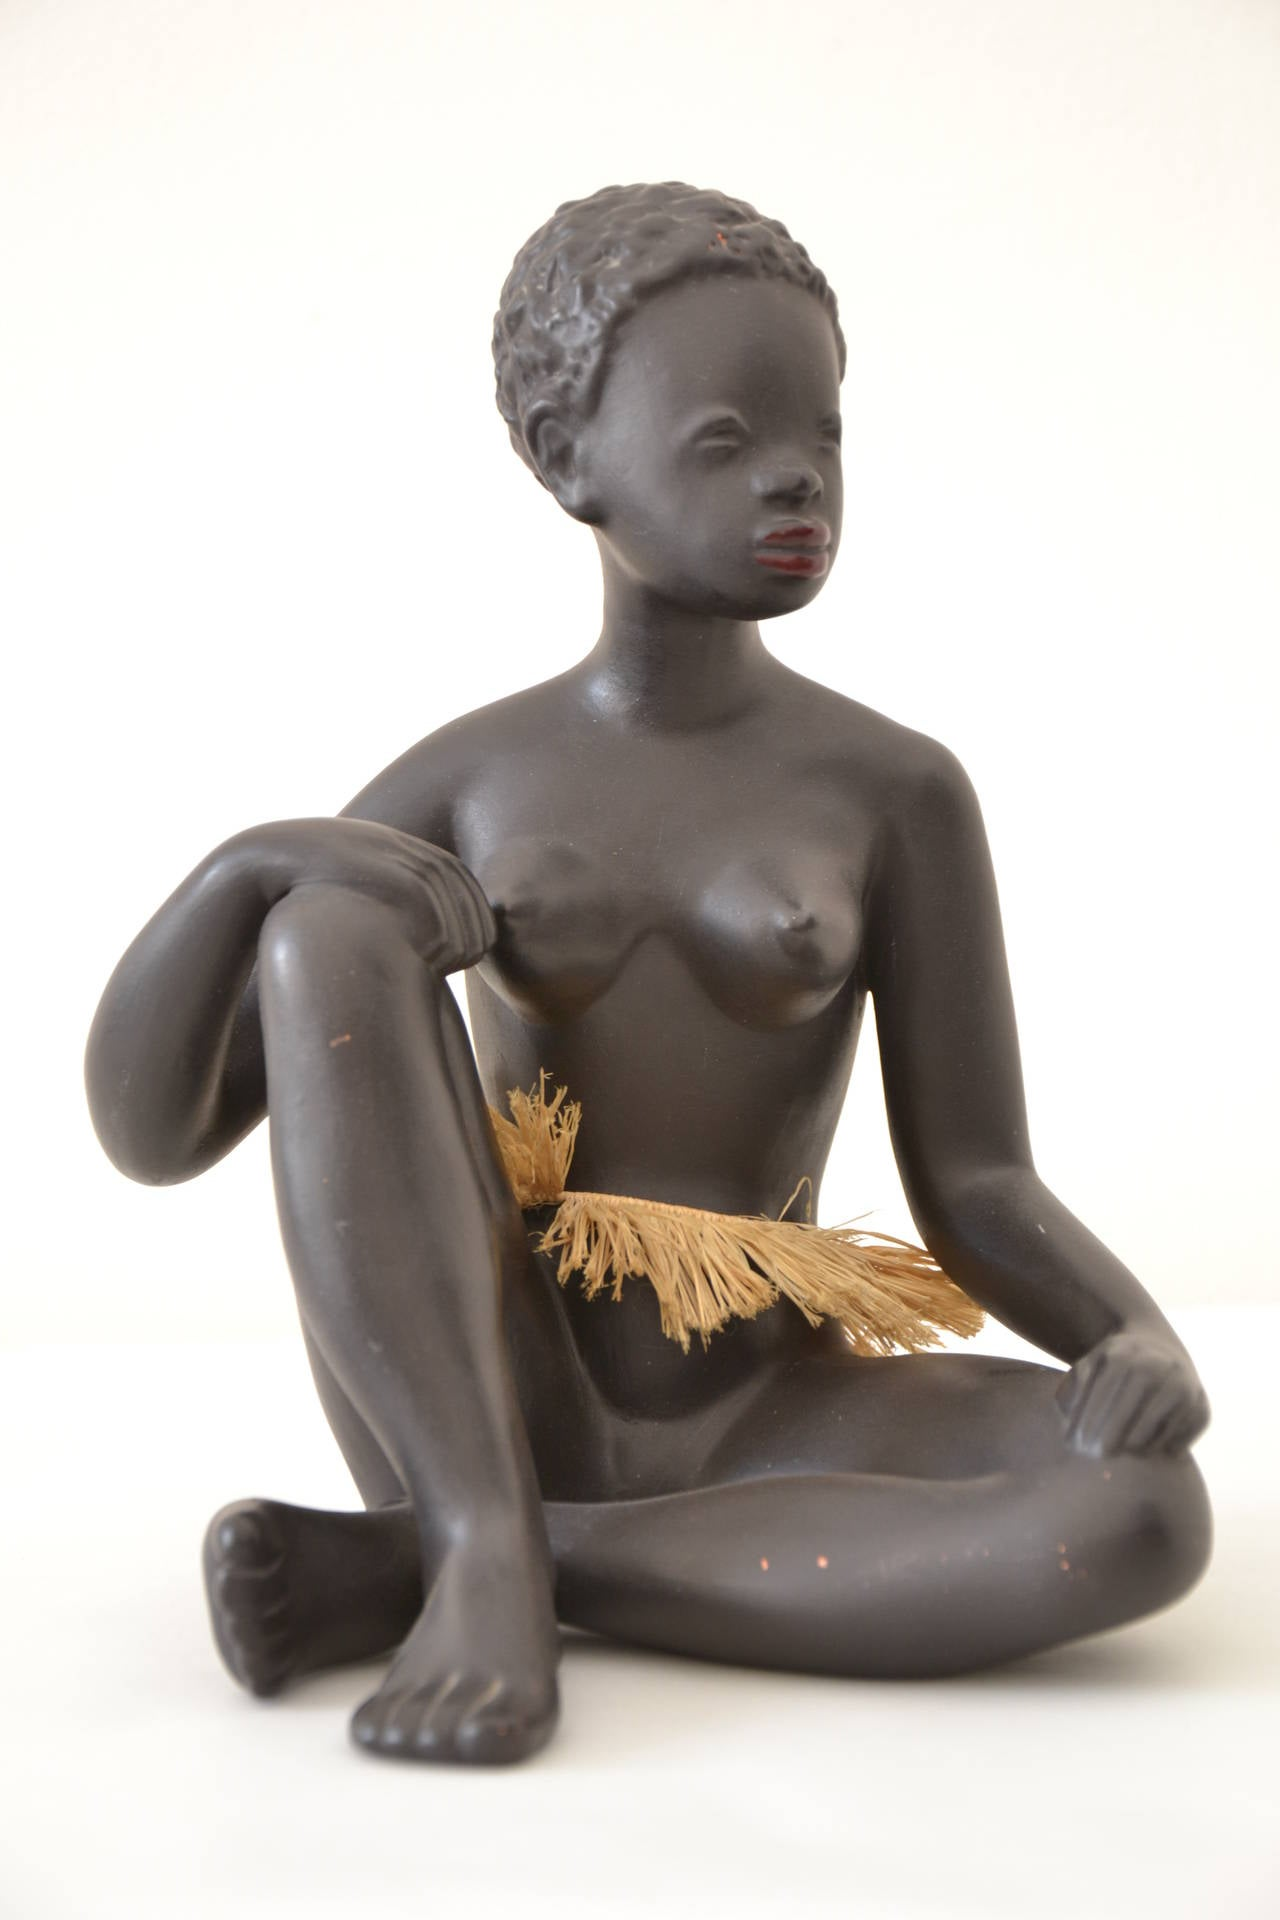 Exotic African Women Sculpture by Leopold Anzengruber, Vienna 1950s 7